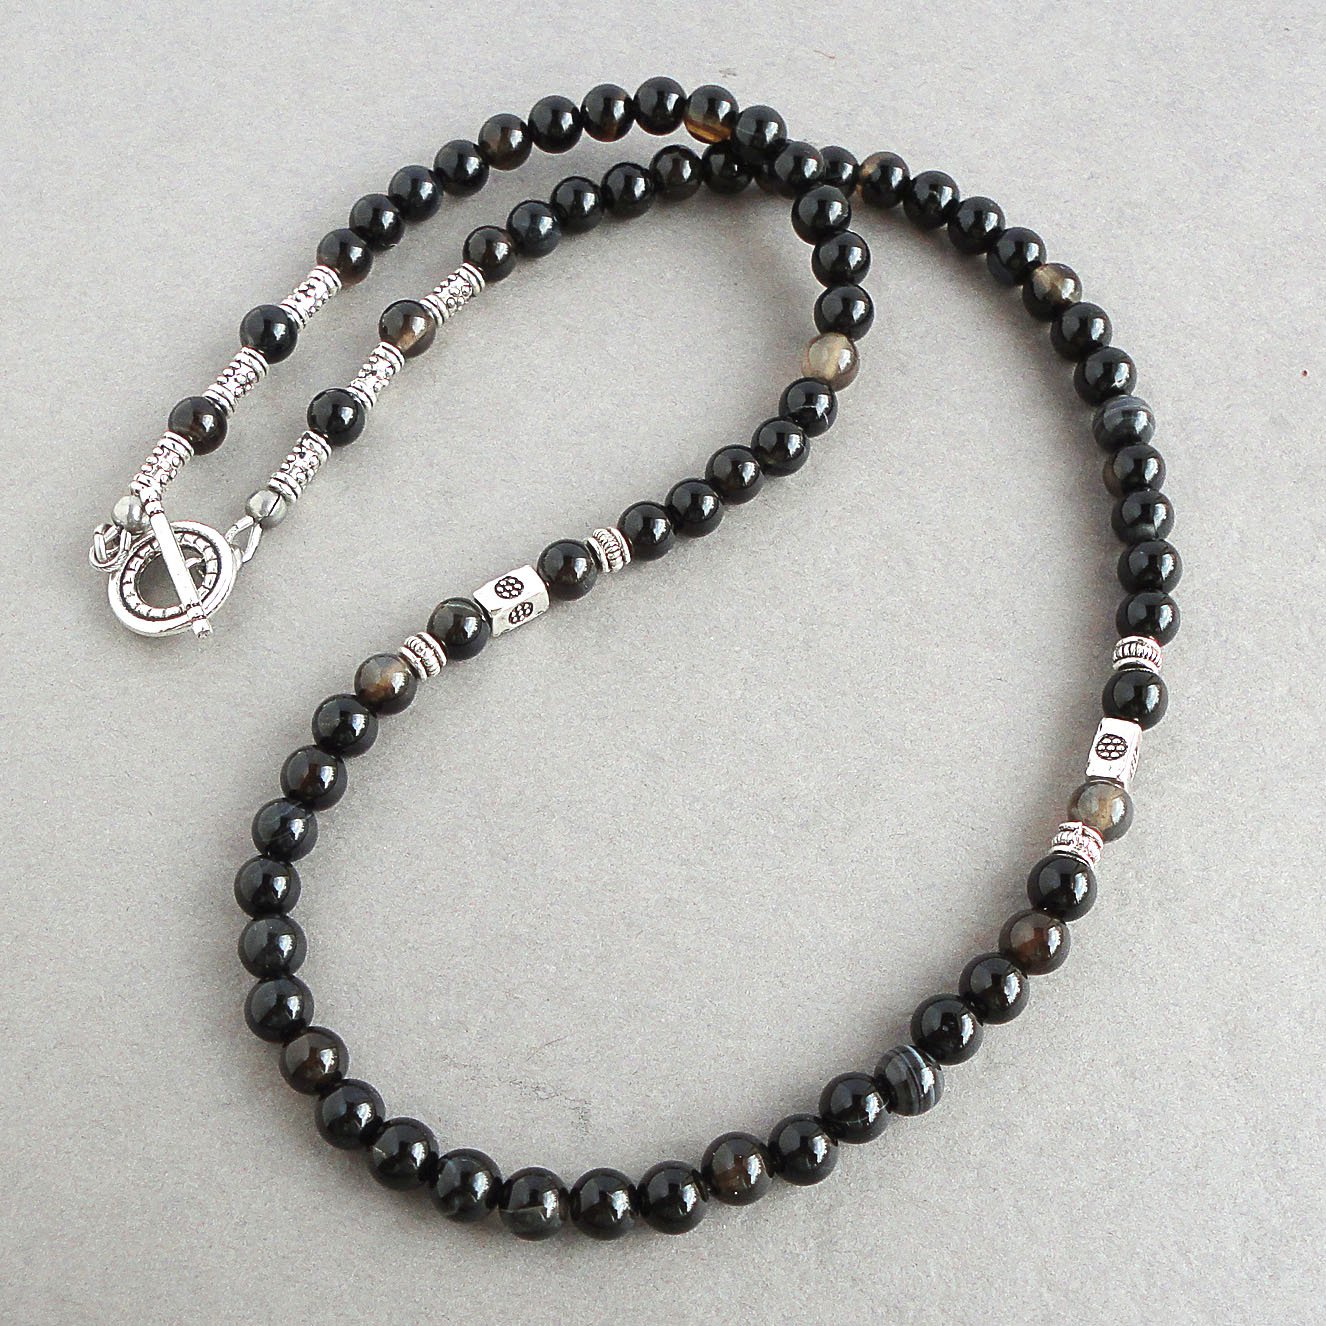 Handcrafted in USA Mens Necklace 19 inch Beaded Snowflake Obsidian and Black Onyx 6mm Gemstone